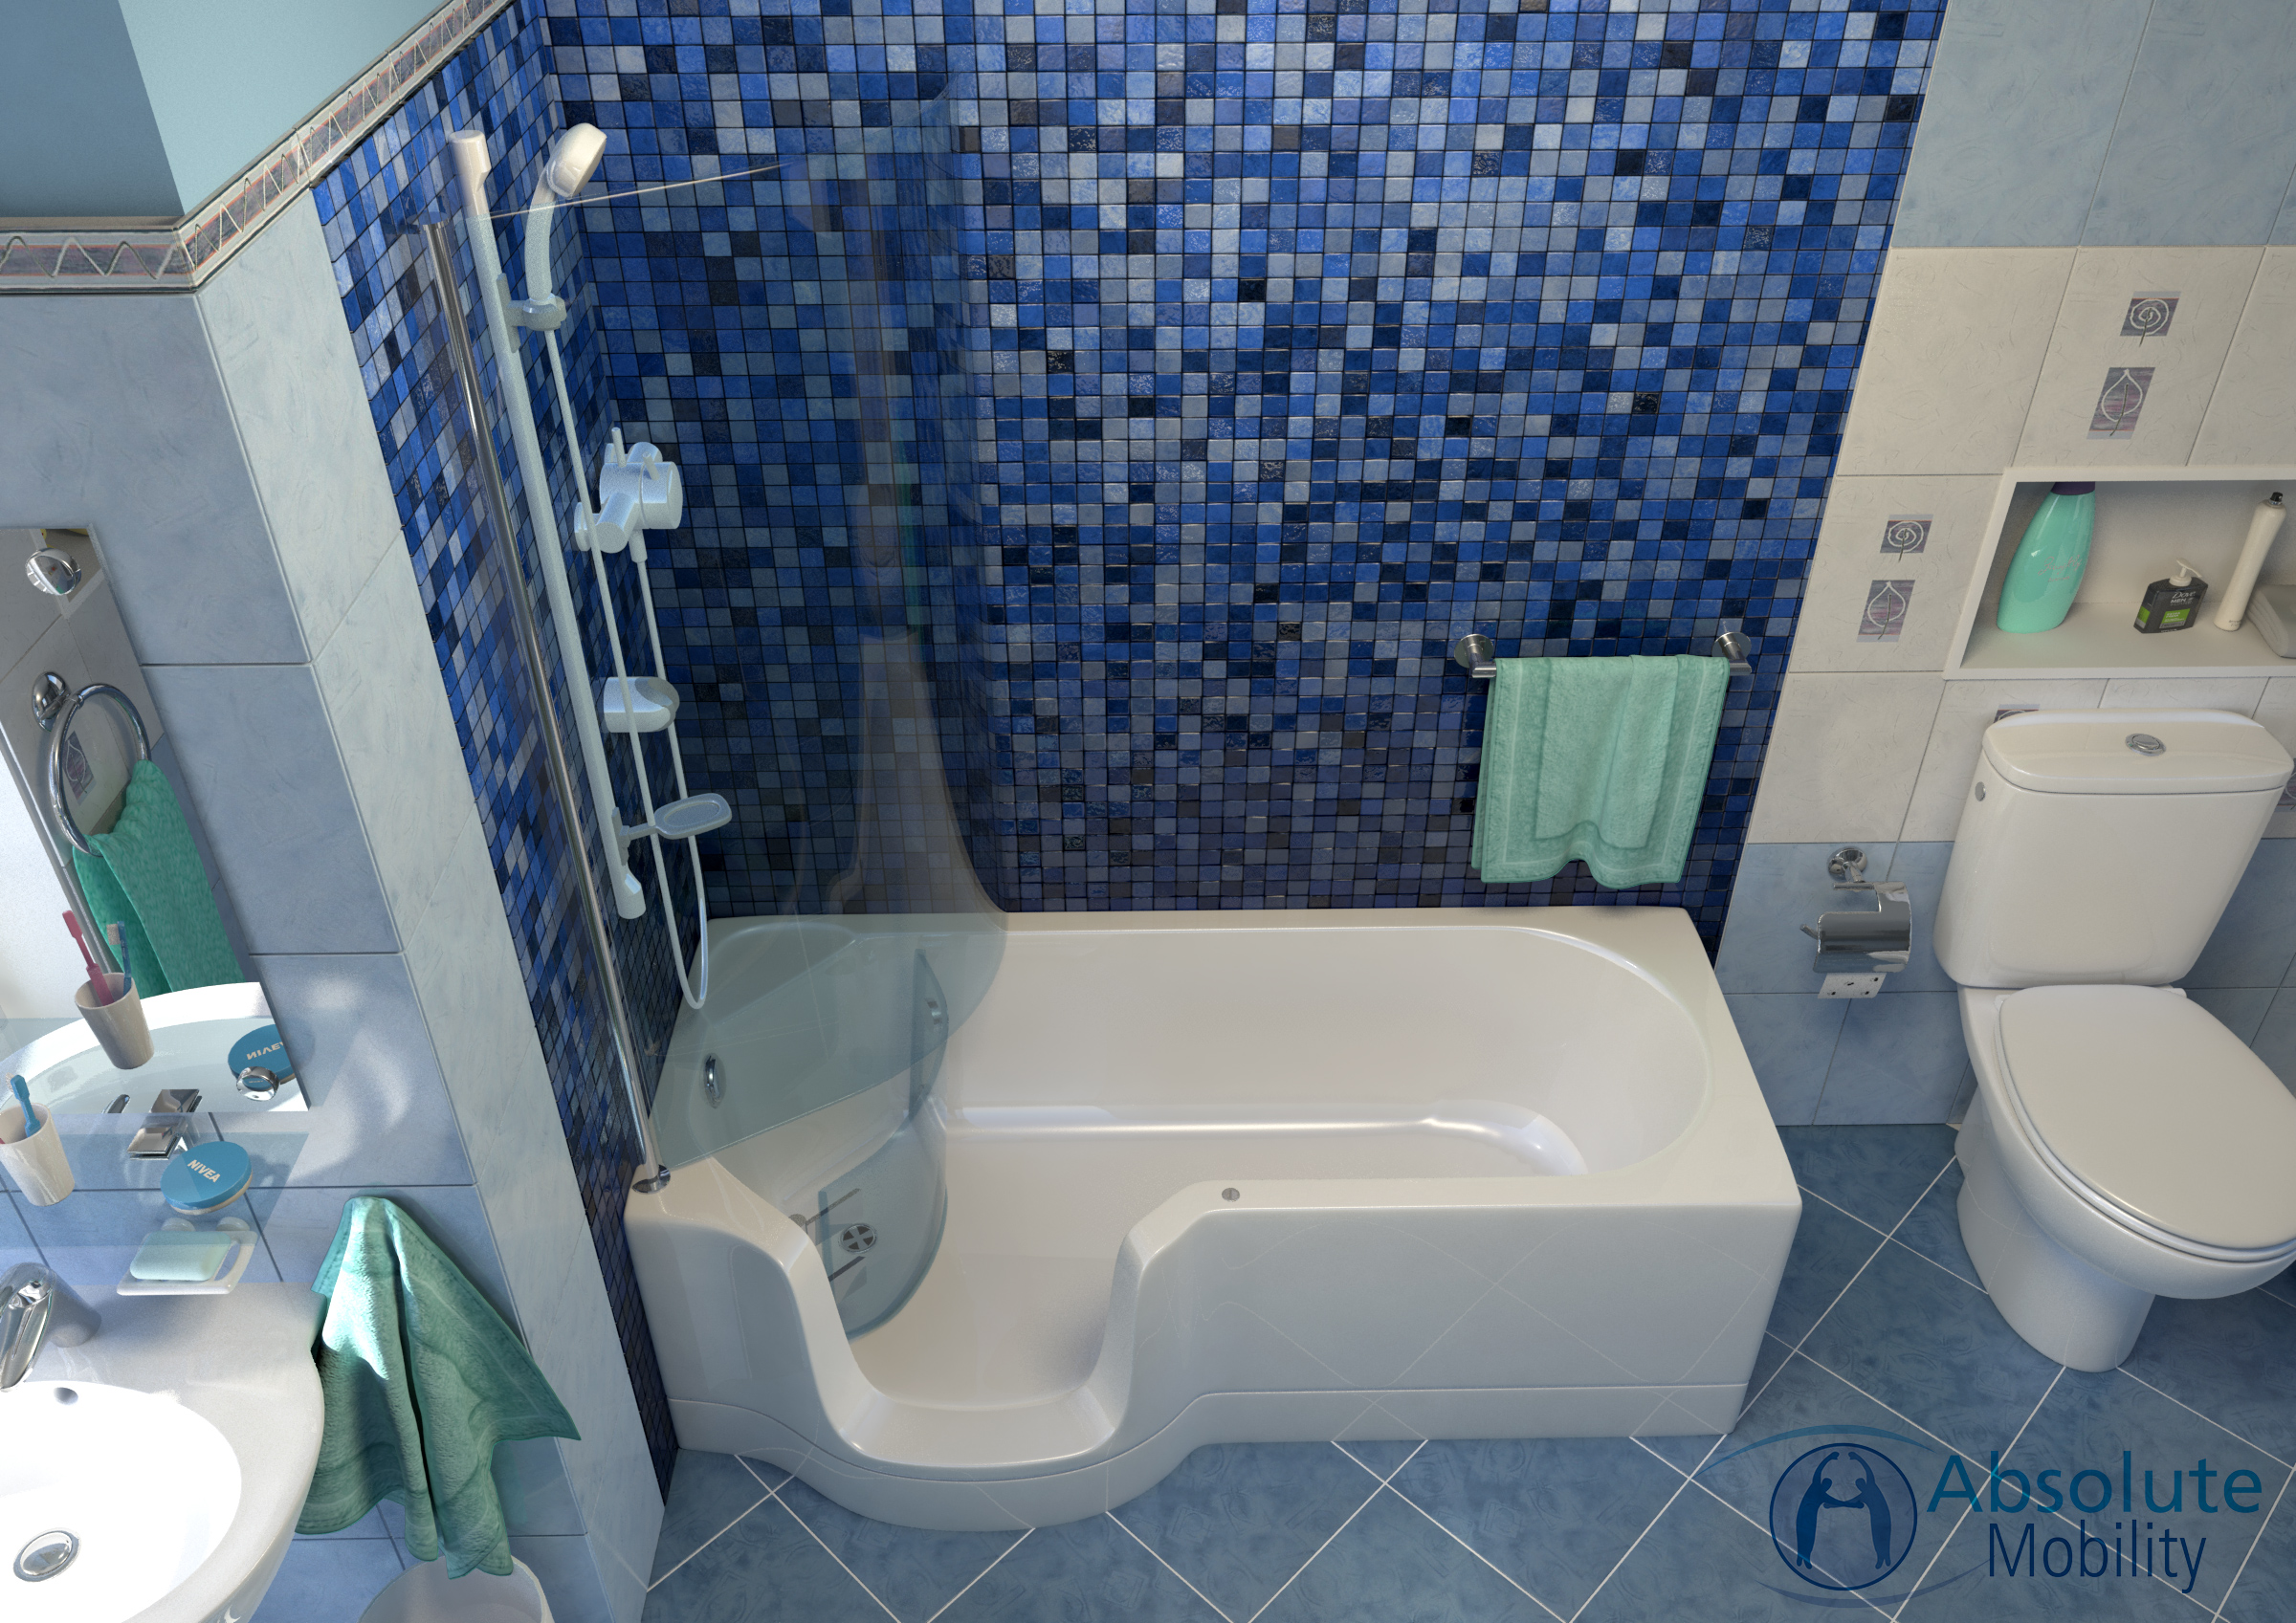 Walk In Shower Baths for the Disabled - Absolute Mobility